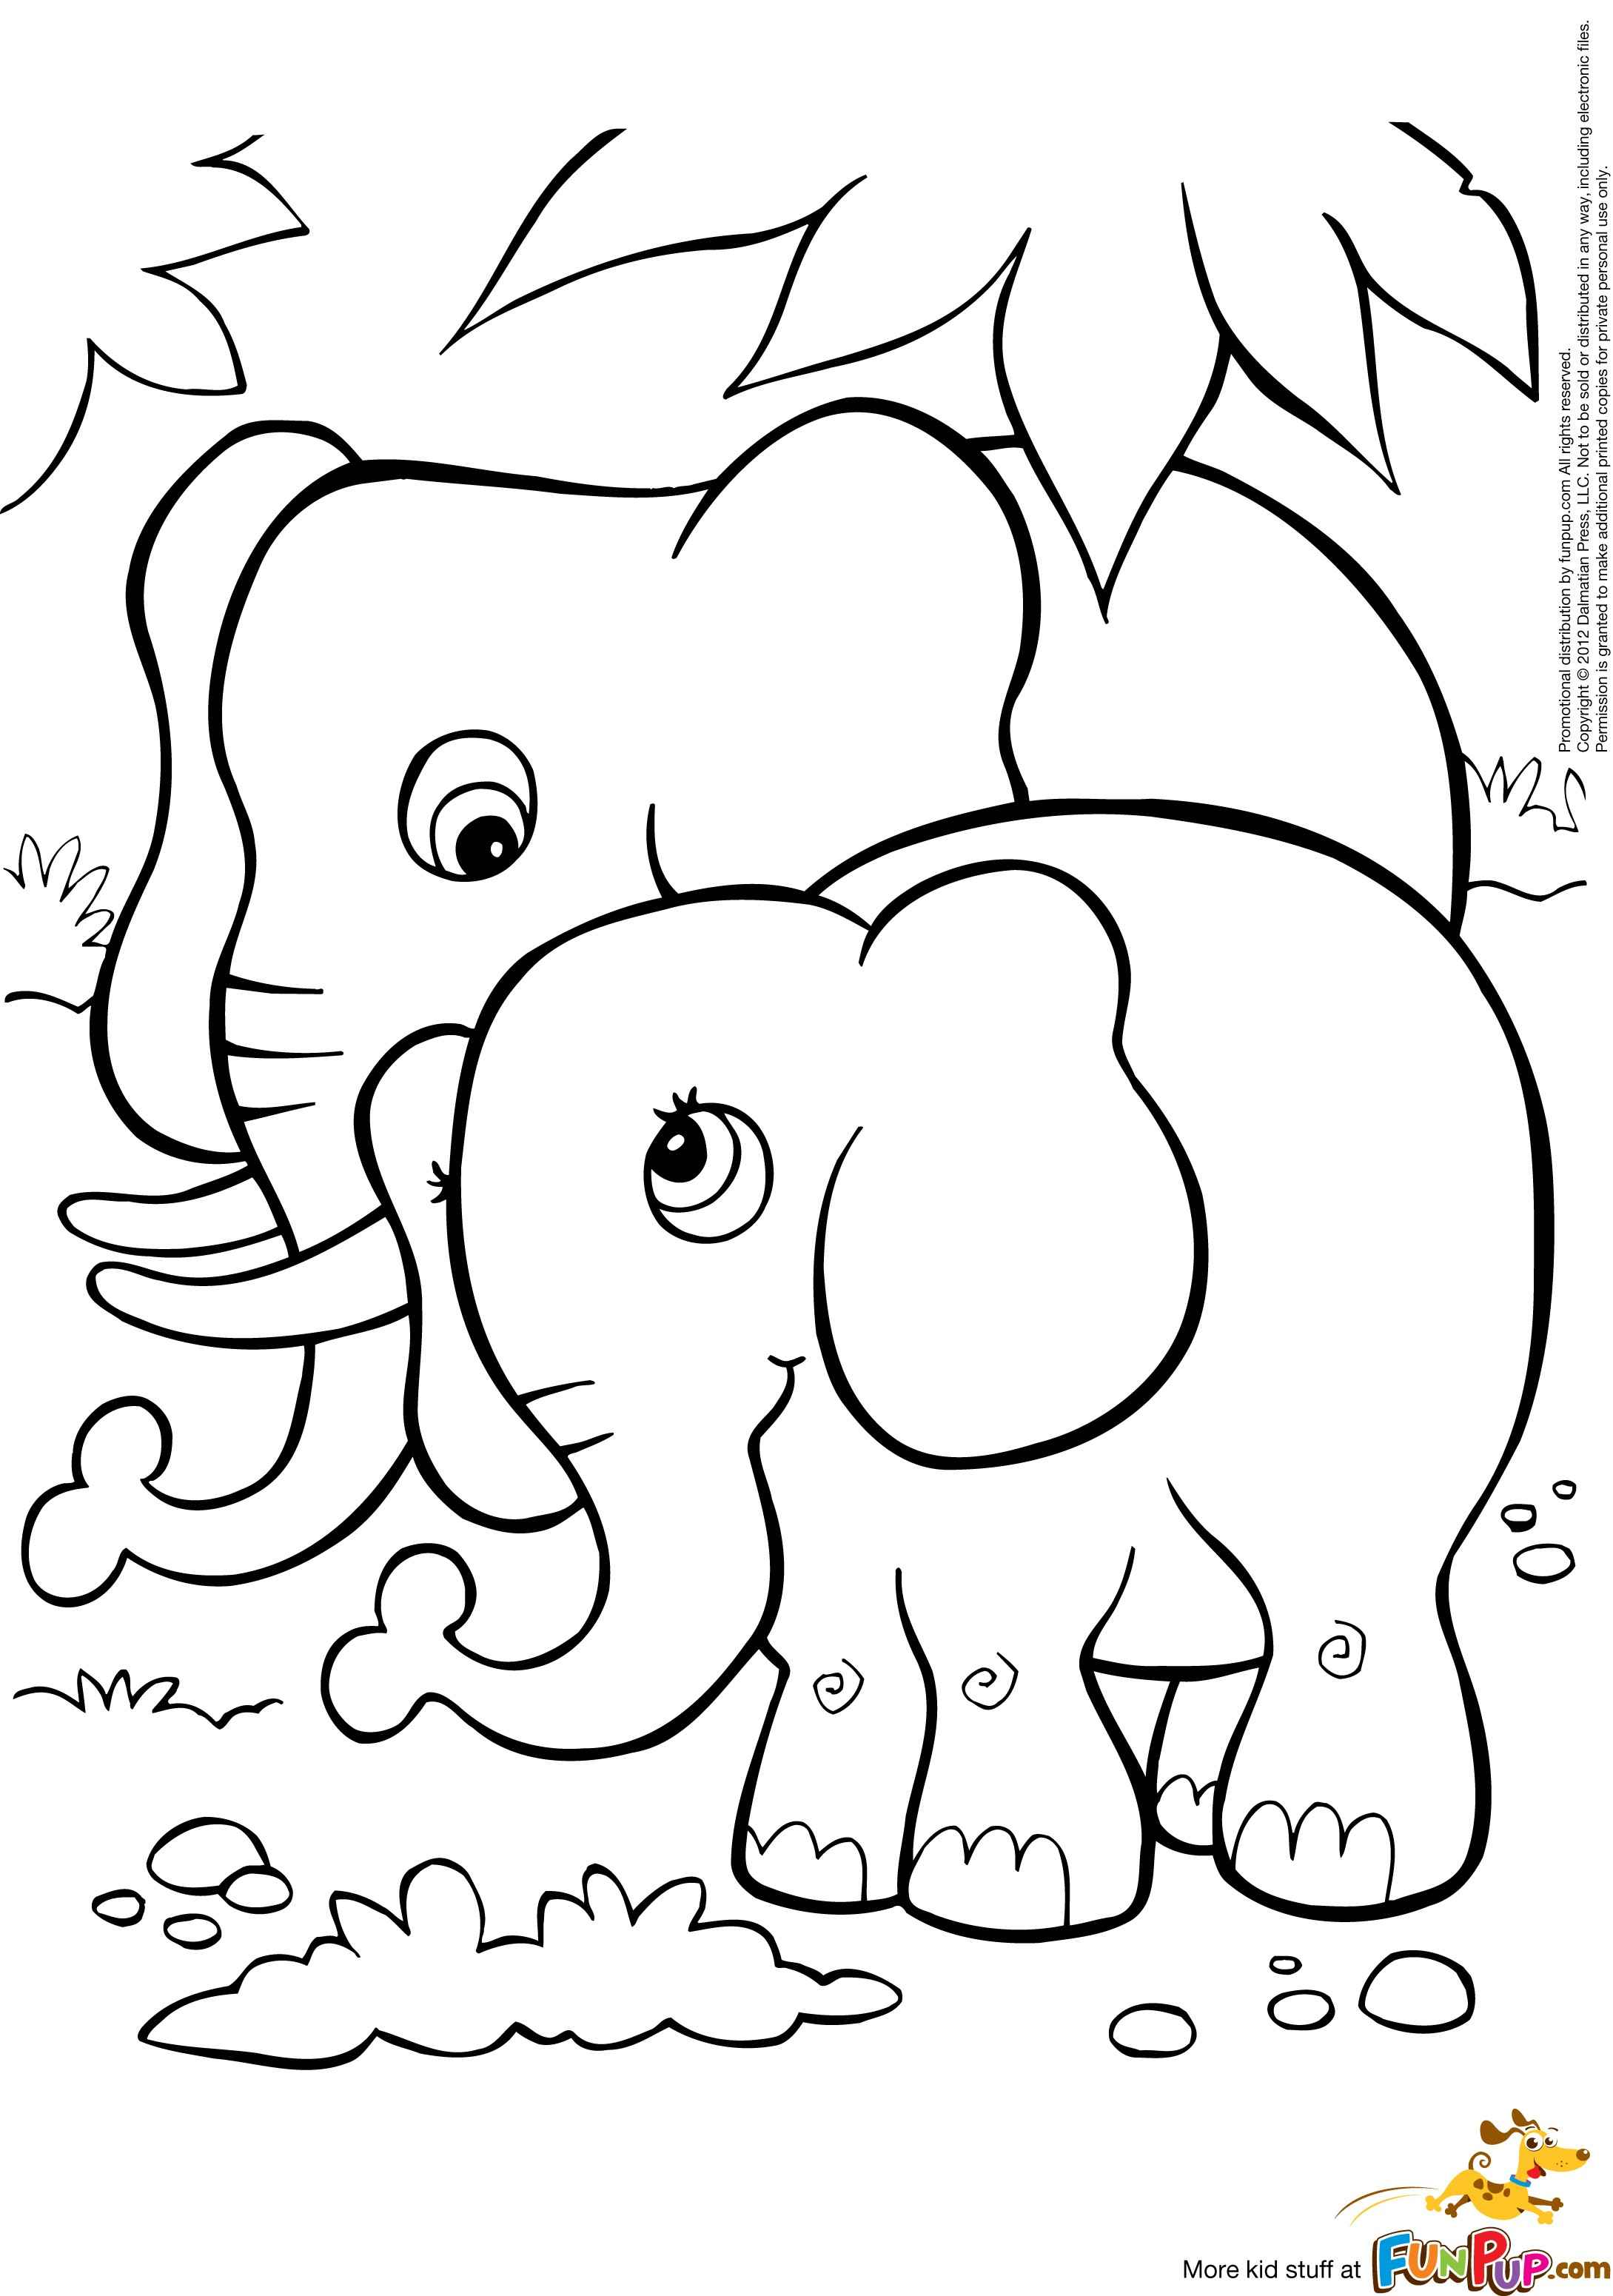 online baby elephant coloring page a fun method of coloring